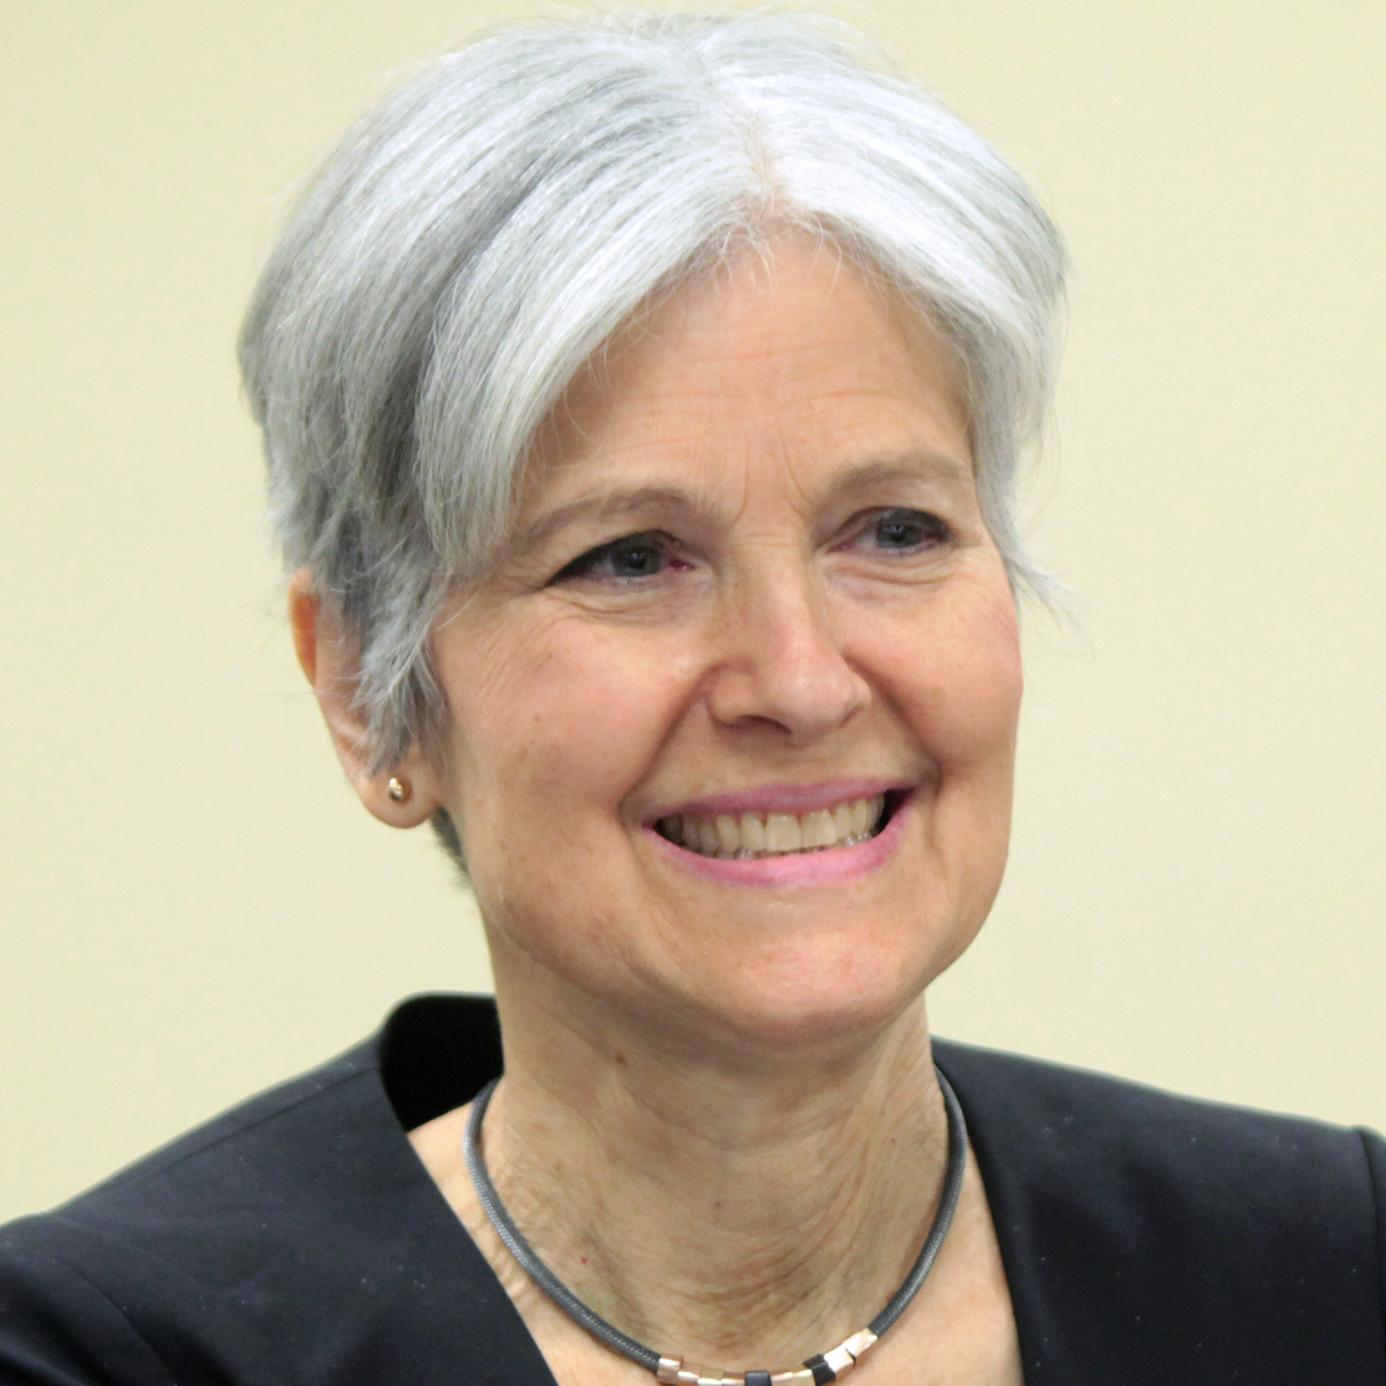 Jill Stein Bio, Net Worth, Facts